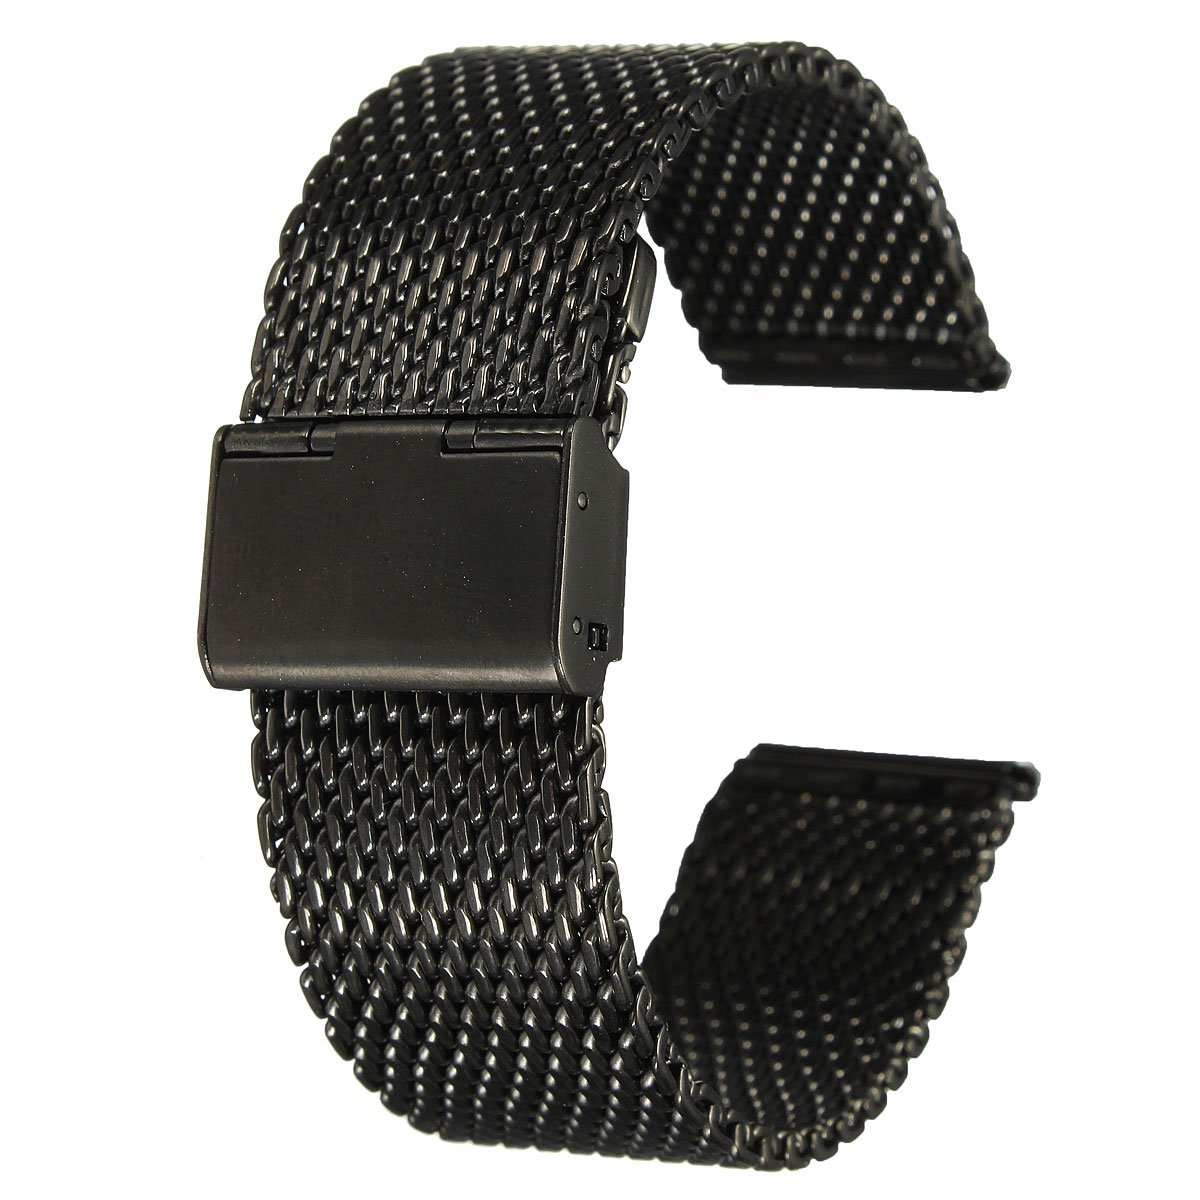 22mm Unisex Stainless Steel Chainmail Watch Strap Band New Year Gift black